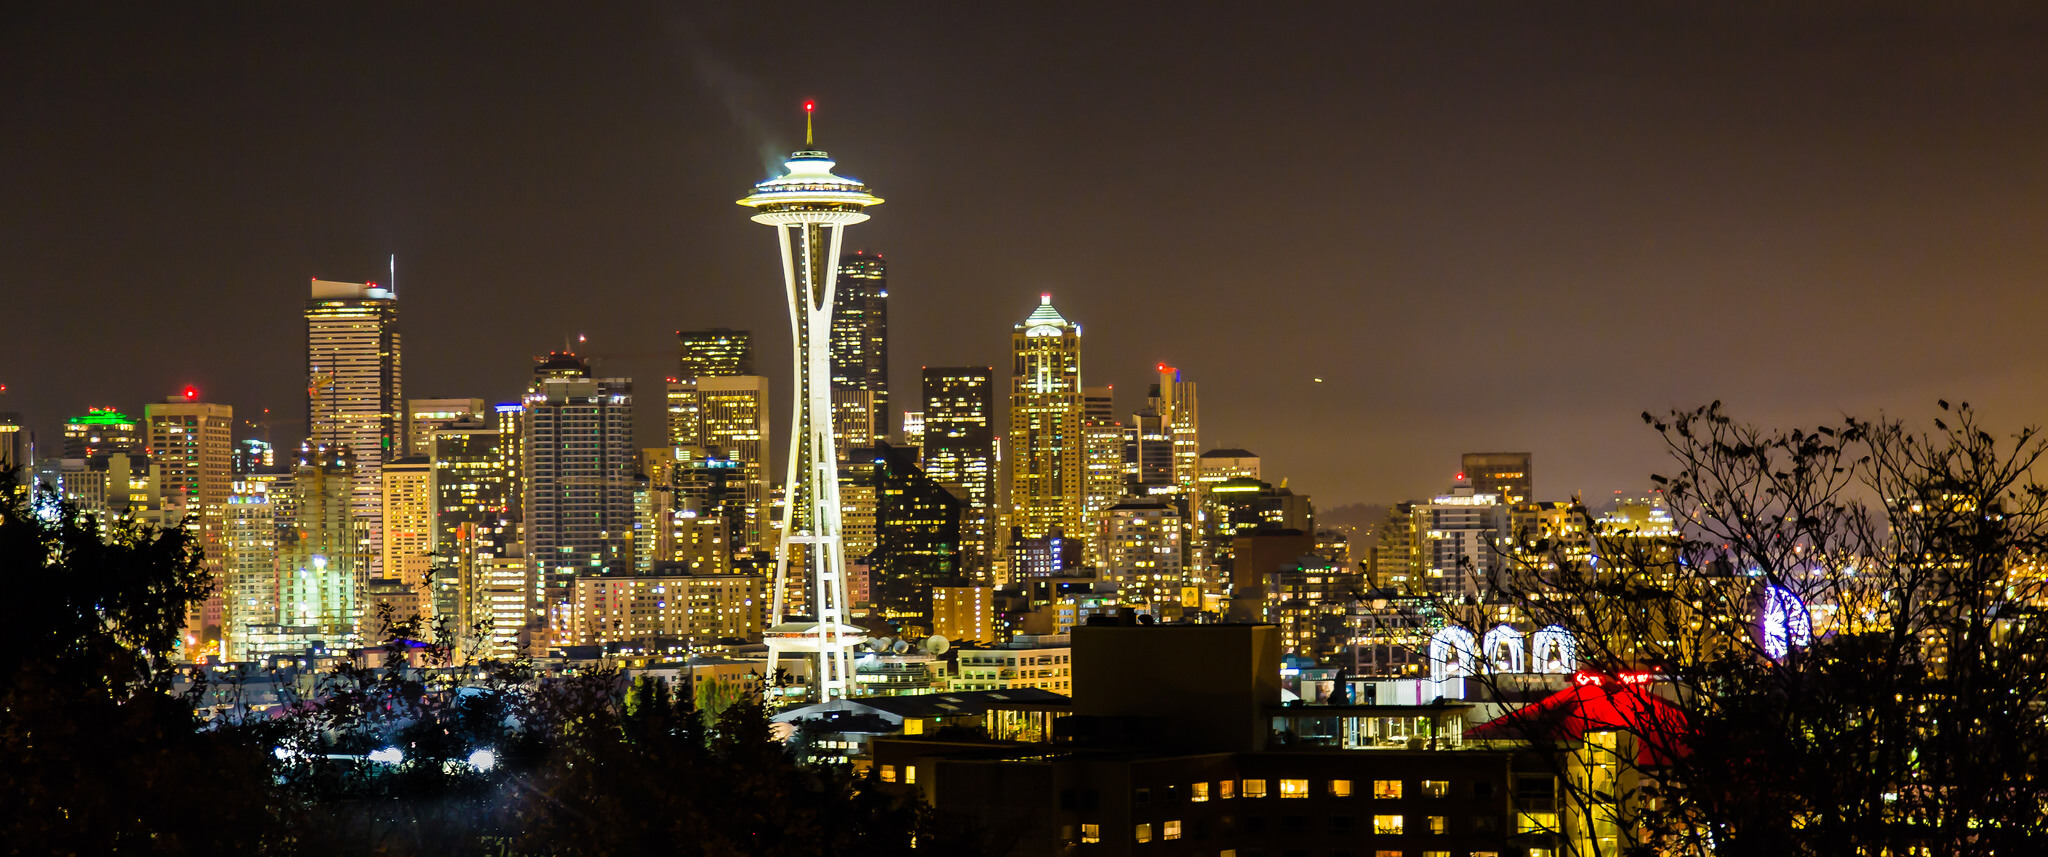 Mobilus In Mobili - Seattle Nov 2014 from Kerry Park